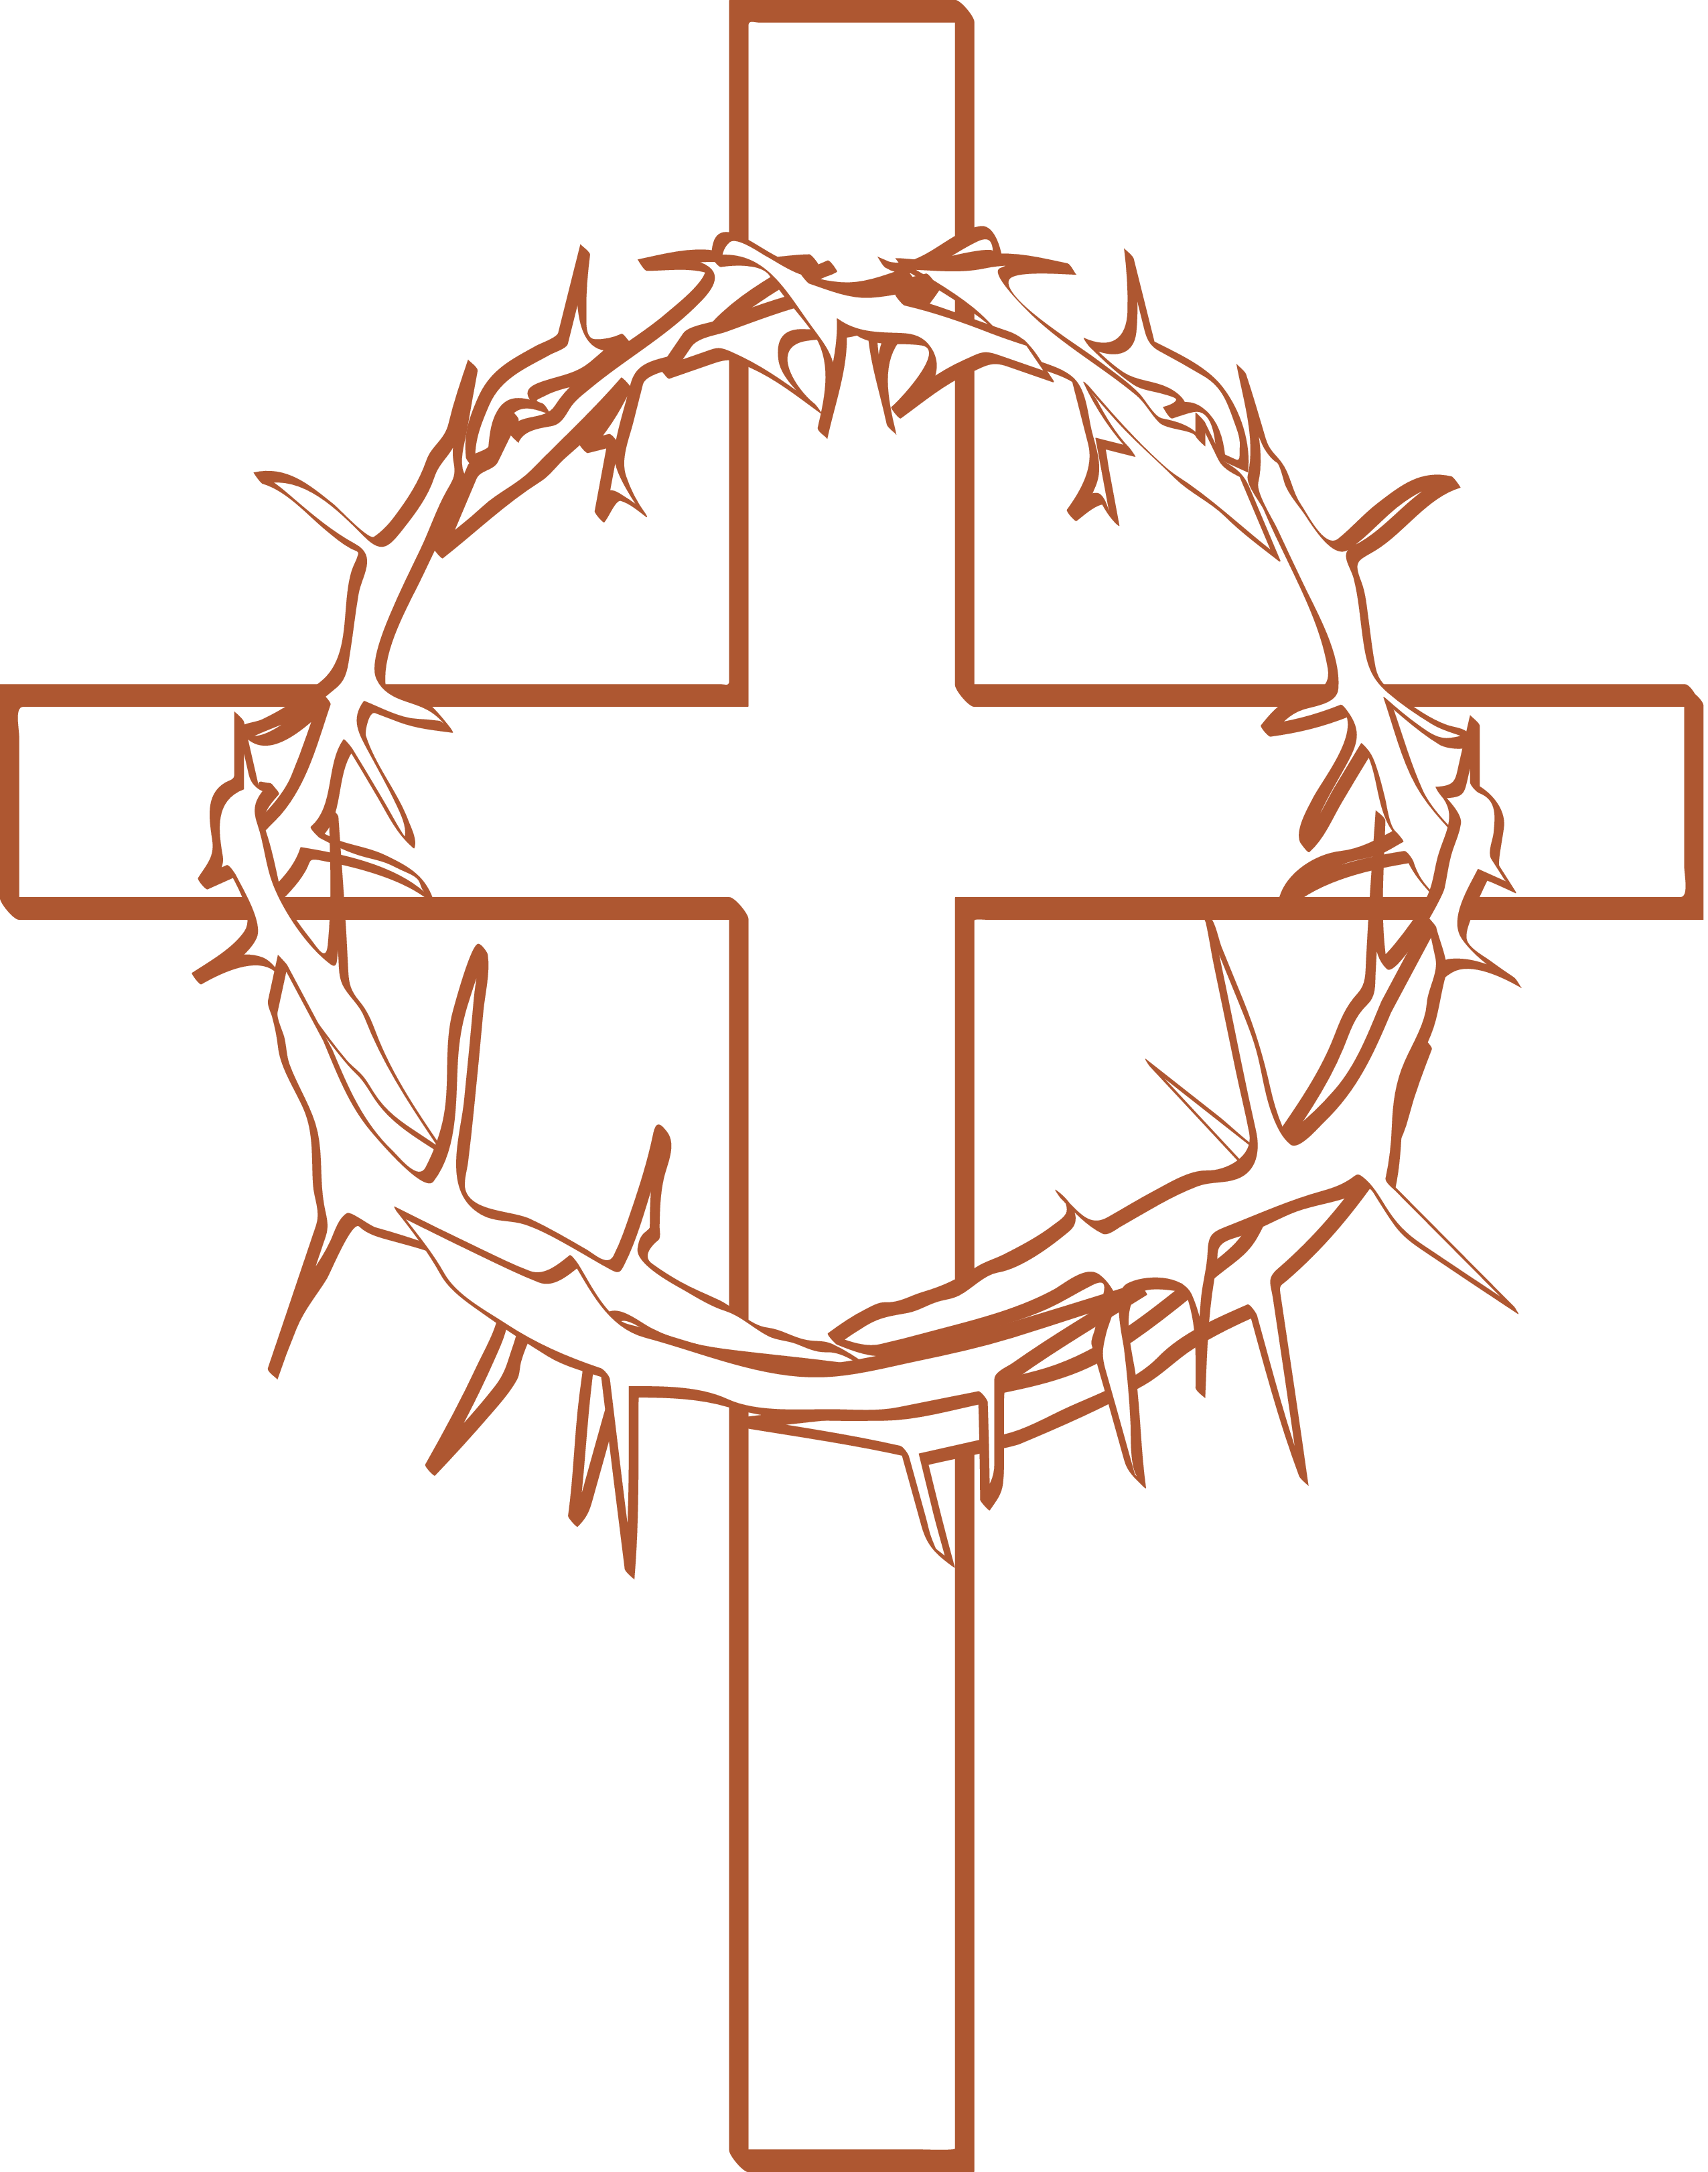 Lent cross with crown of thorns clipart clipart black and white Free Thorn Crown Cliparts, Download Free Clip Art, Free Clip Art on ... clipart black and white